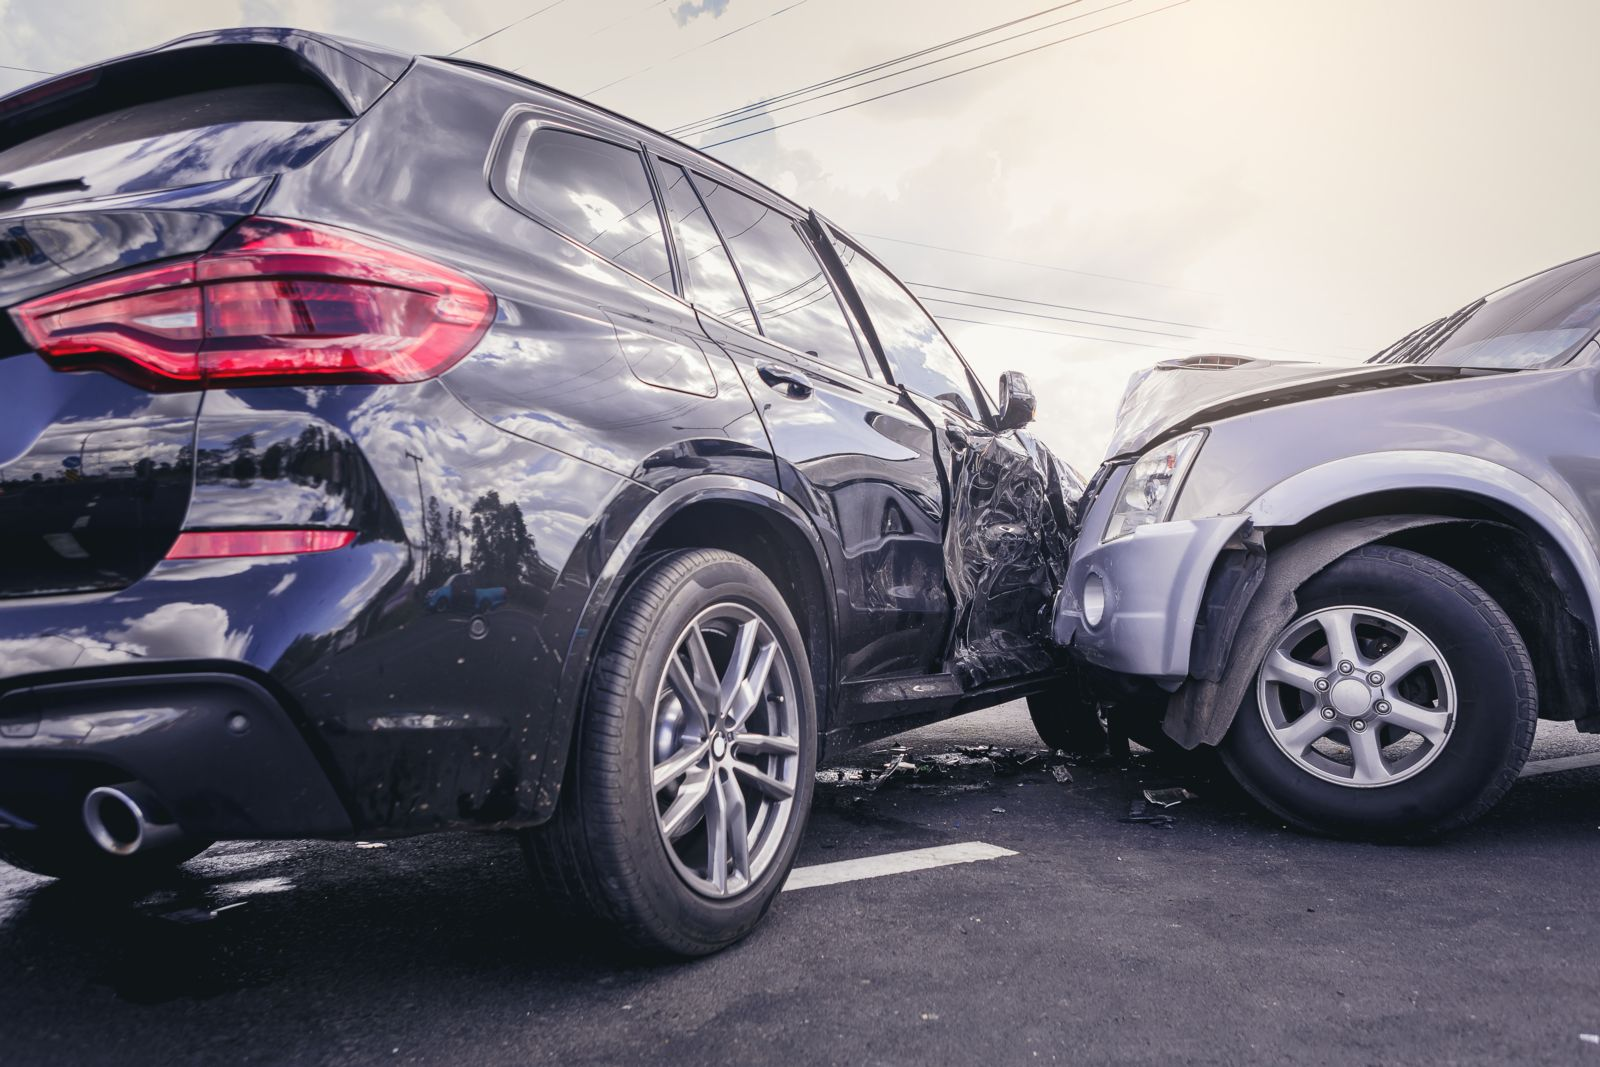 Dallas Texas Car Accident Lawyers The Ashmore Law Firm